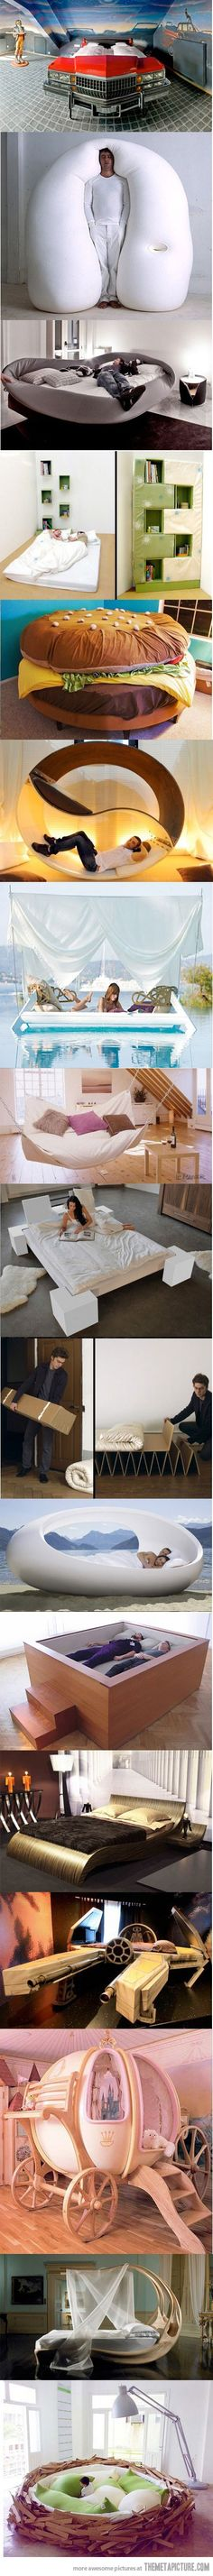 awesome whimsical beds